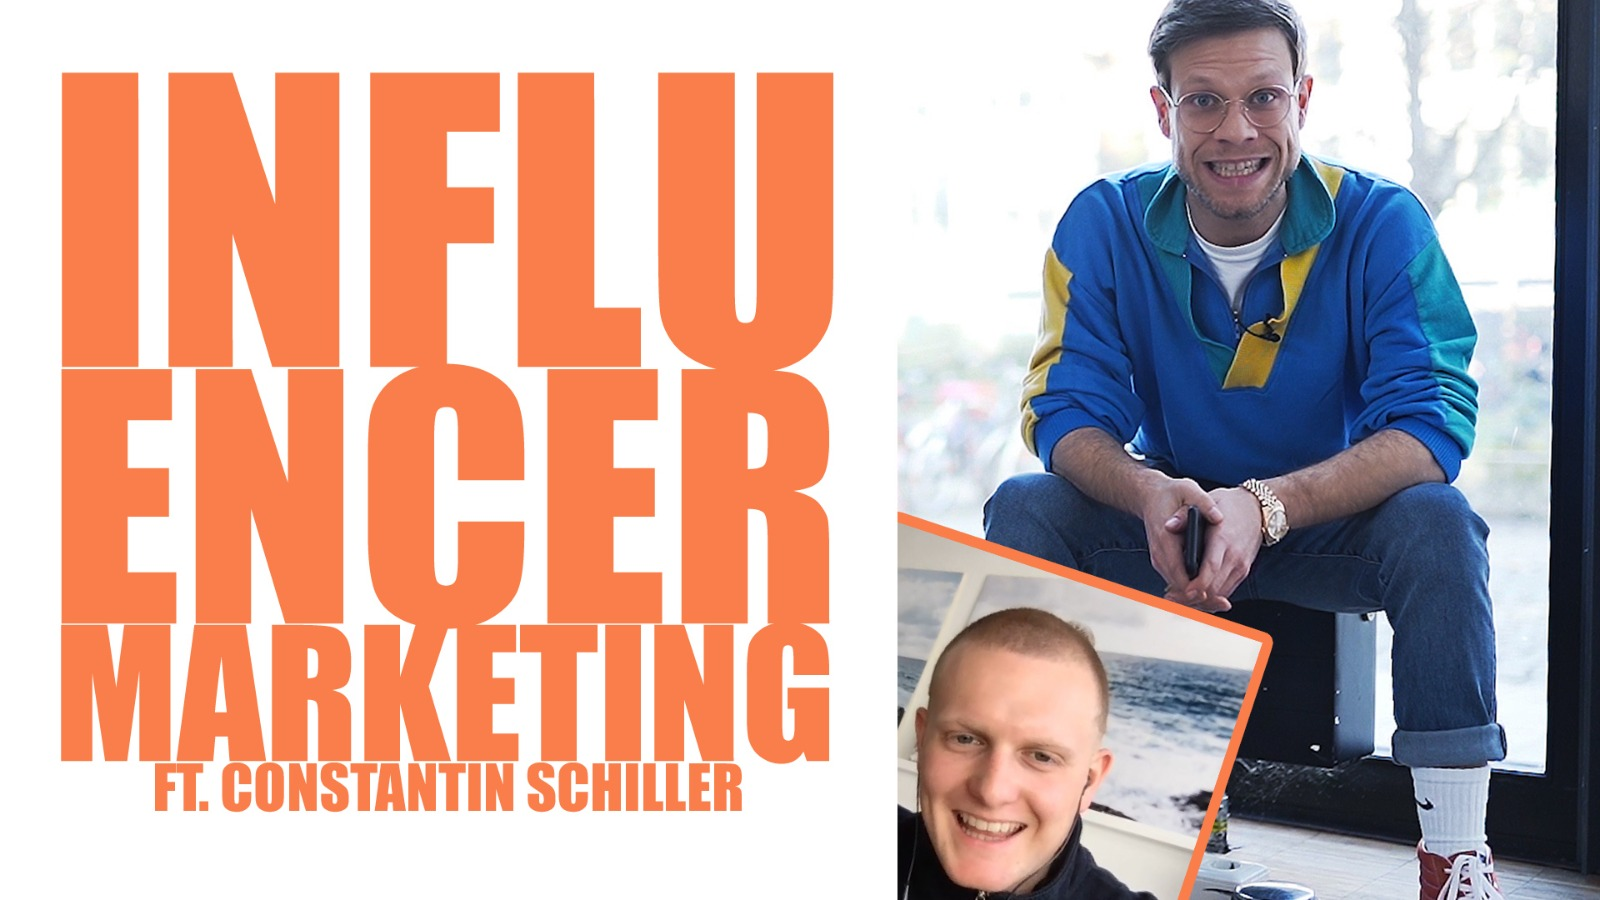 Constantin Schilling im Interview mit Daniel Zoll zu Instagram Marketing